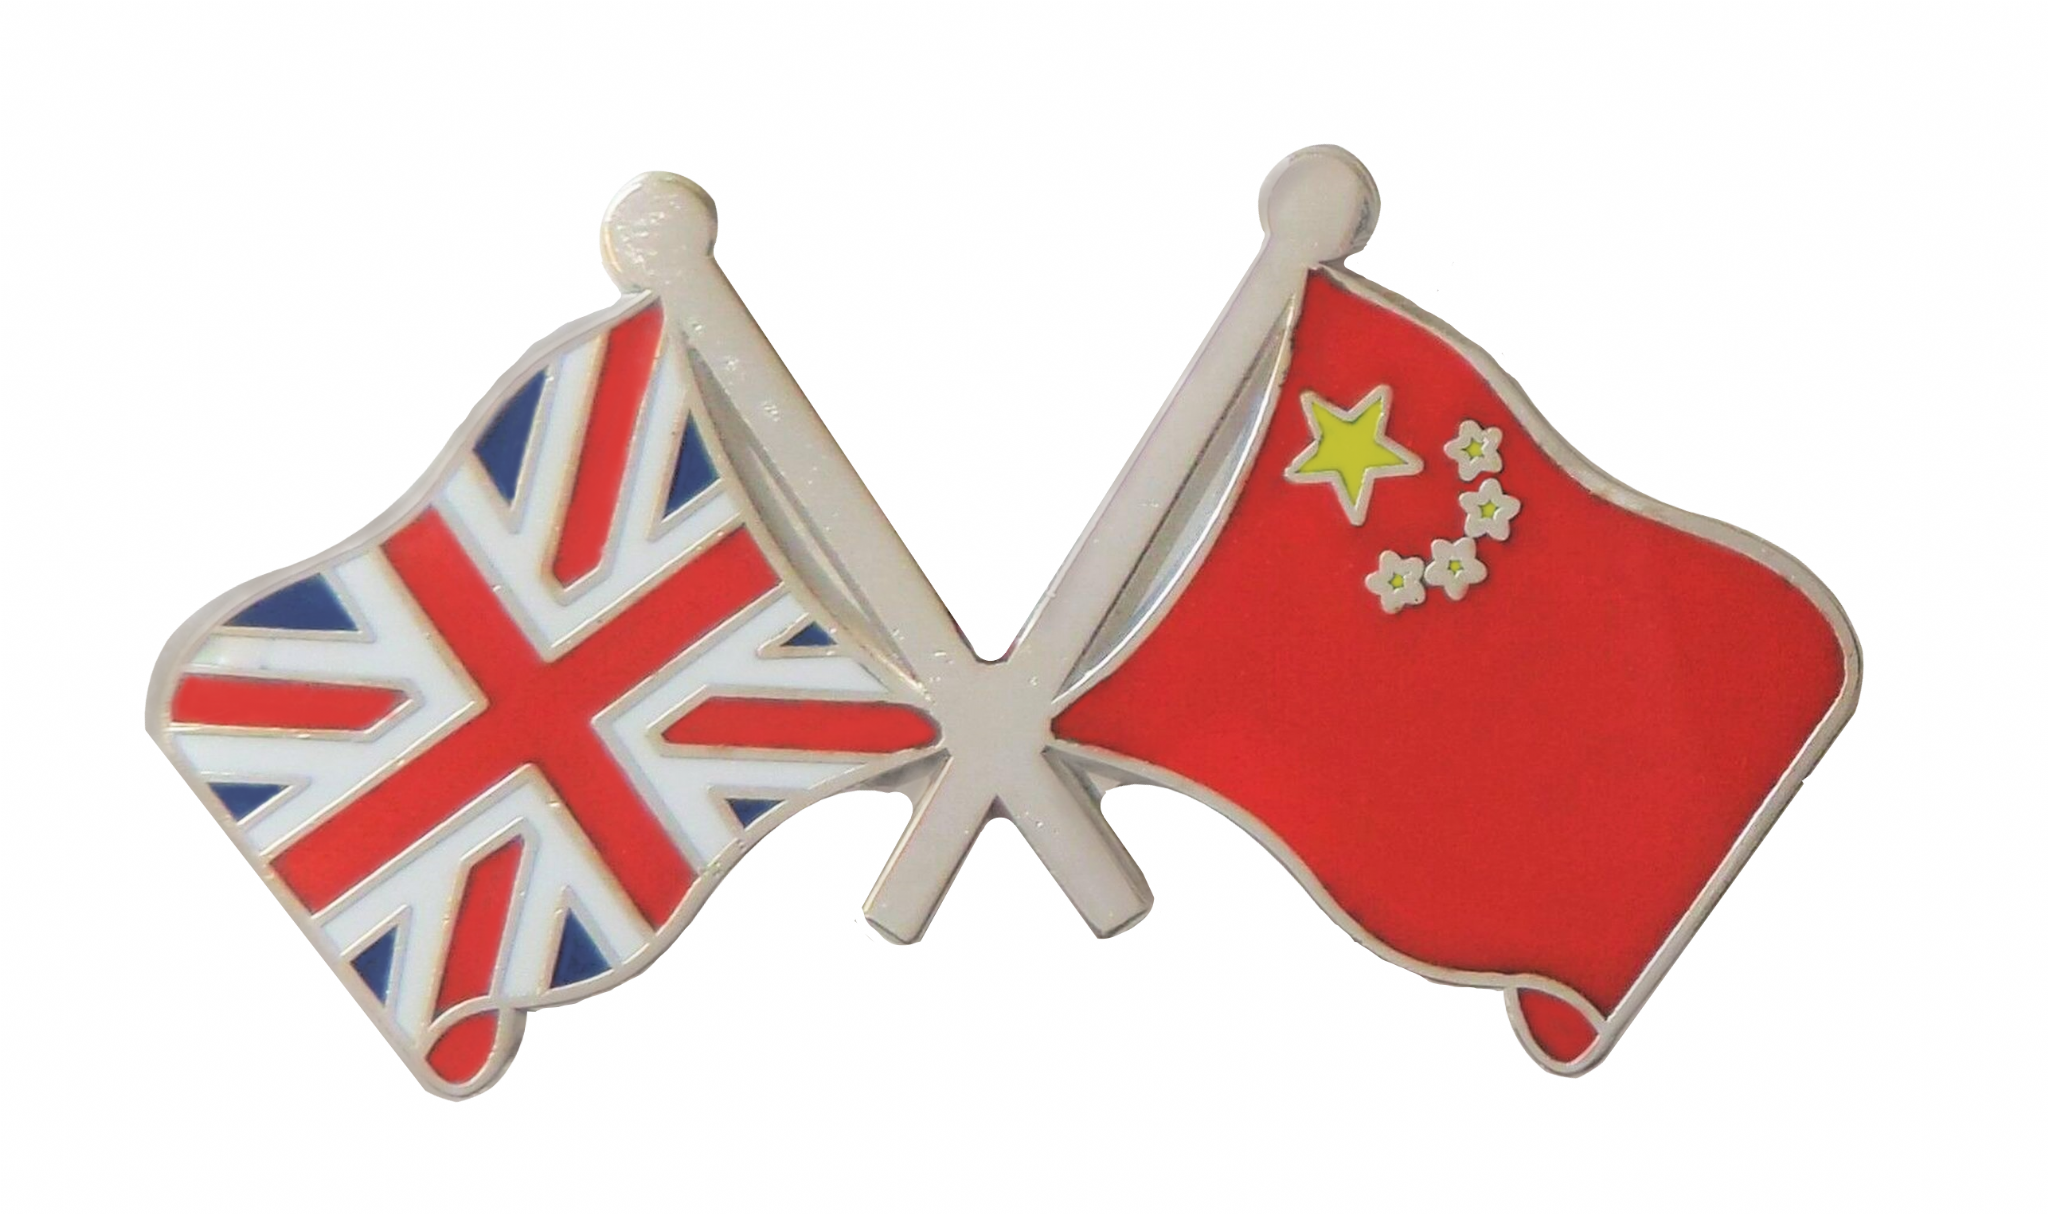 UNION JACK UK /& CHINA FRIENDSHIP FLAG Metal Lapel Pin Badge Butterfly Clasp